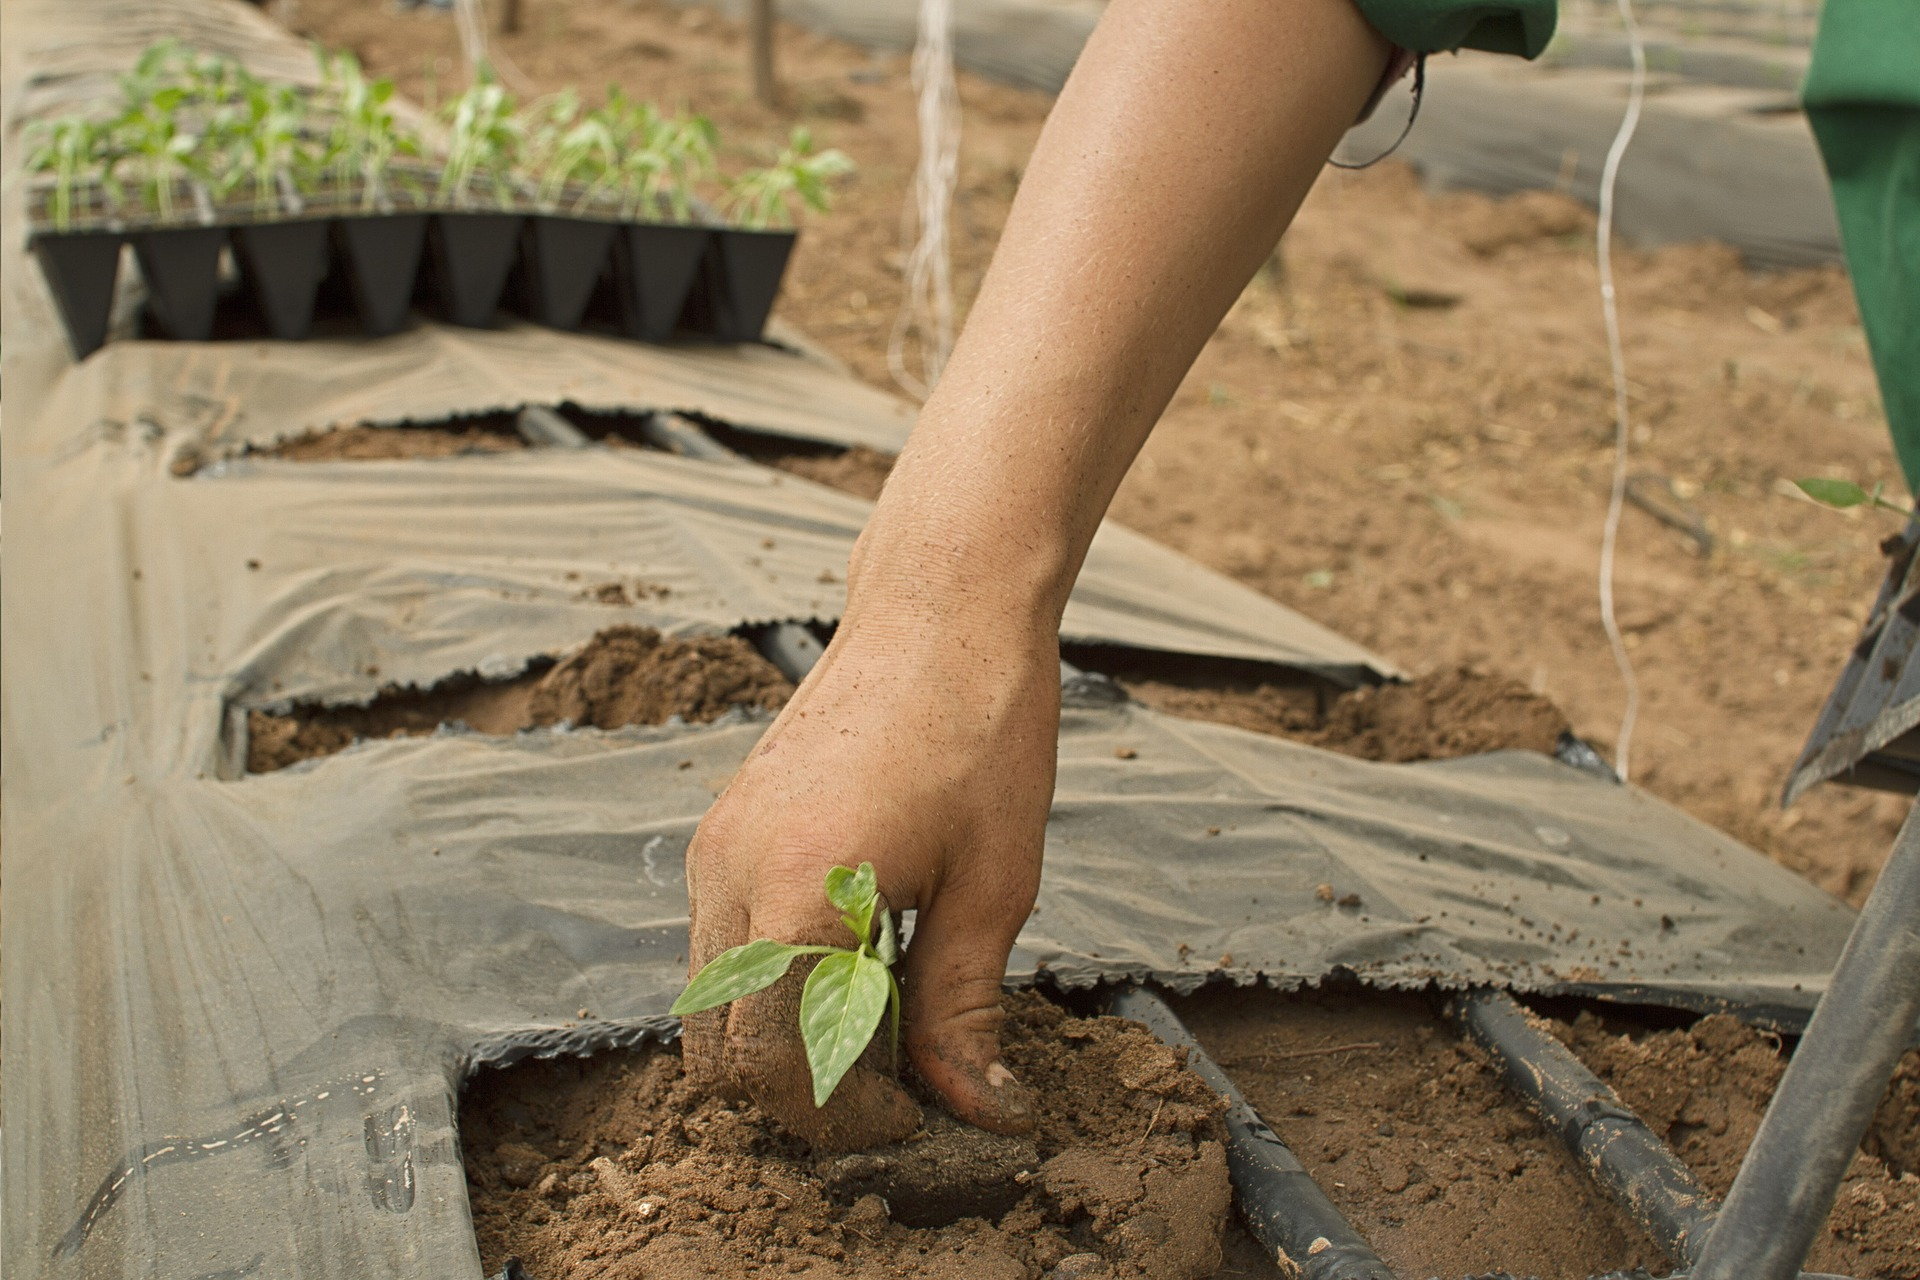 Home & Garden: A New Soil Conditioner Has Several Benefits